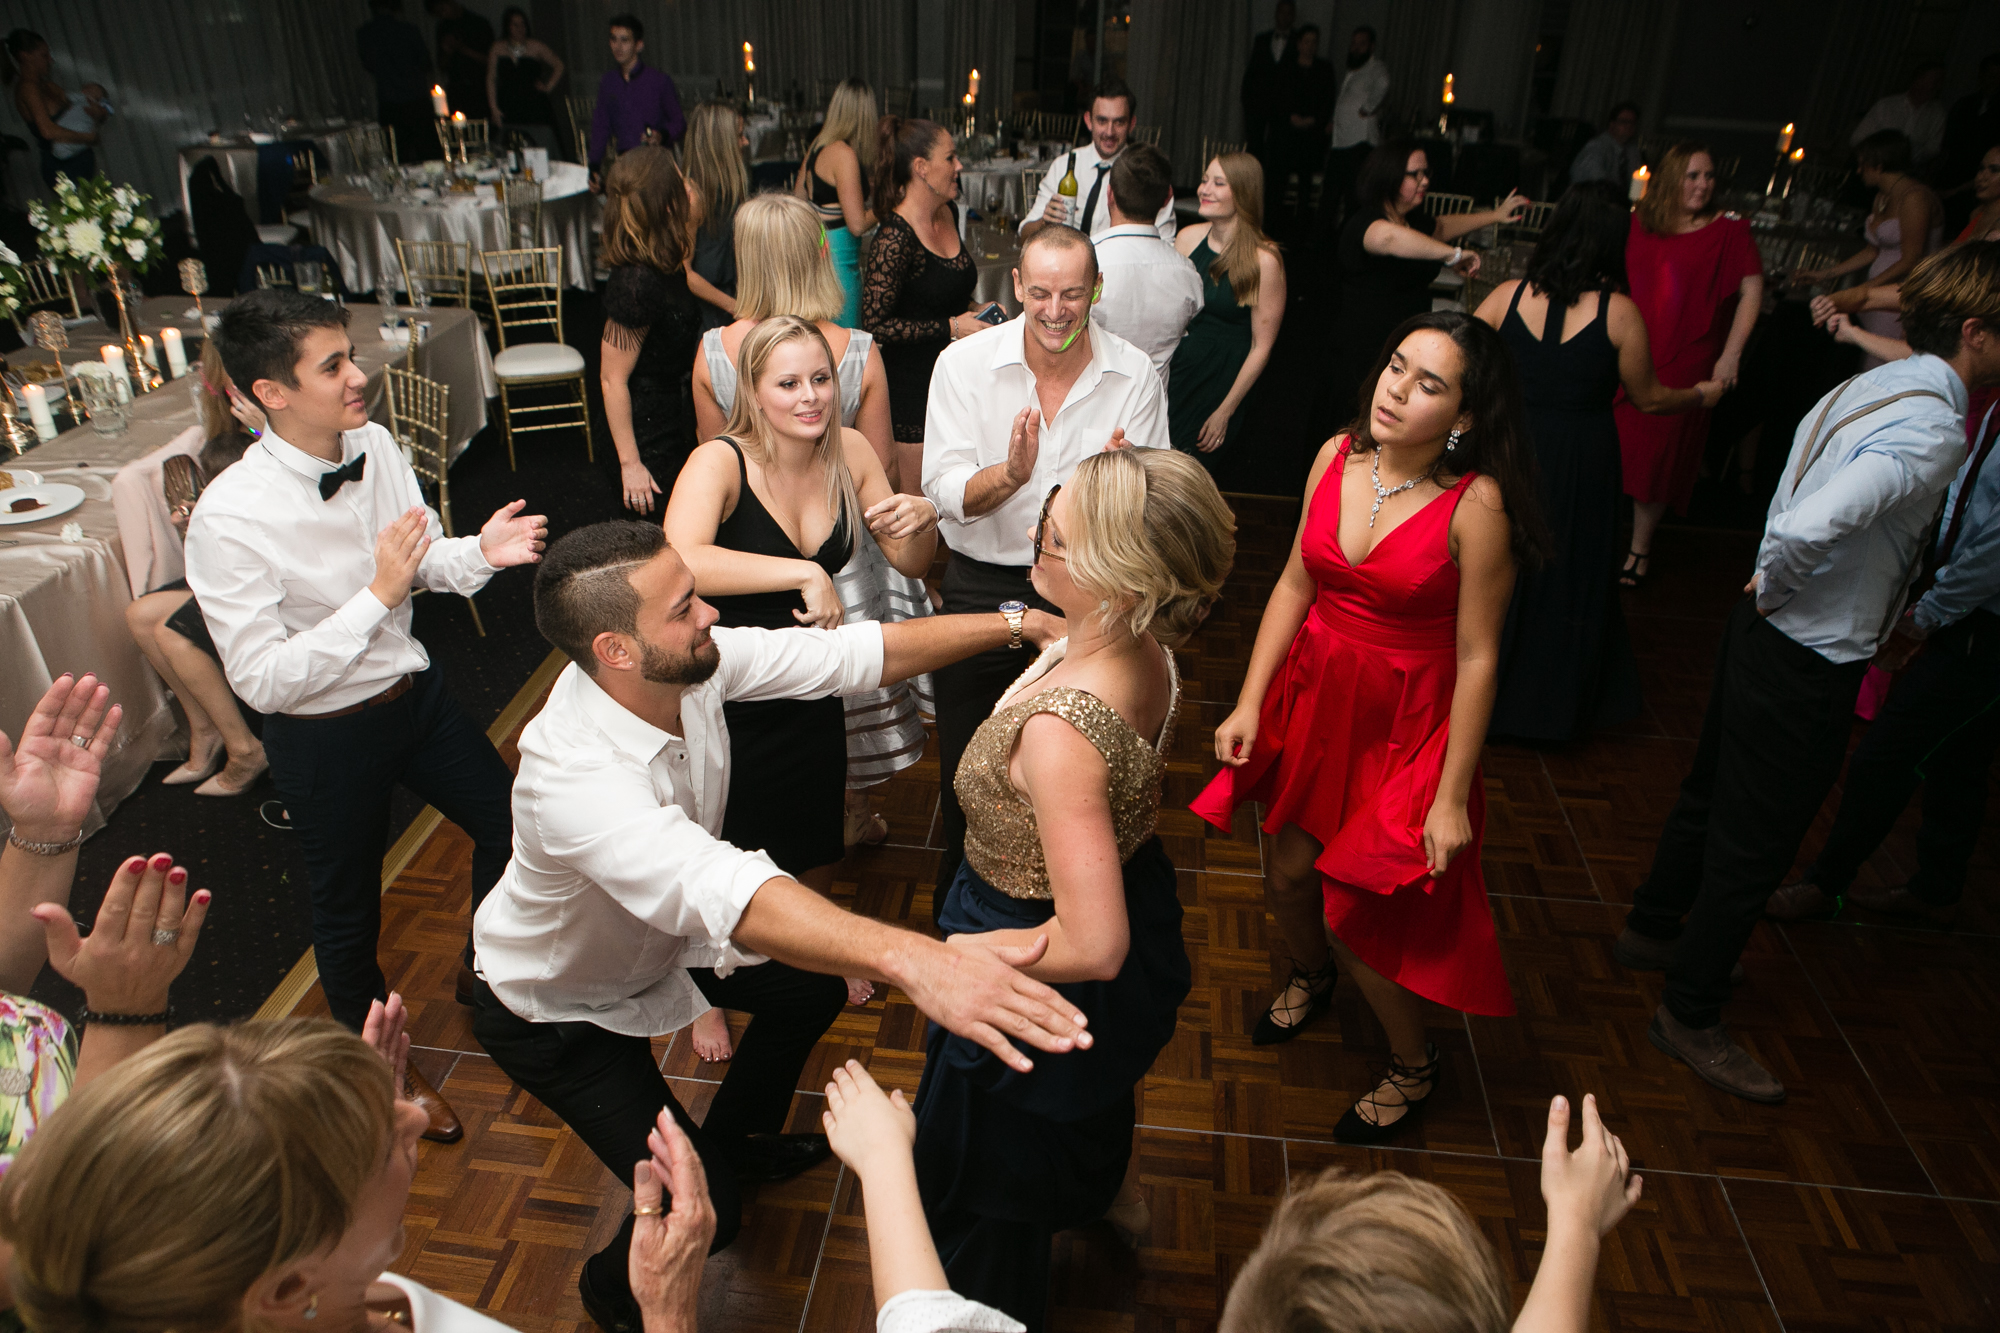 Nathan+Morgan_Wedding-136.jpg